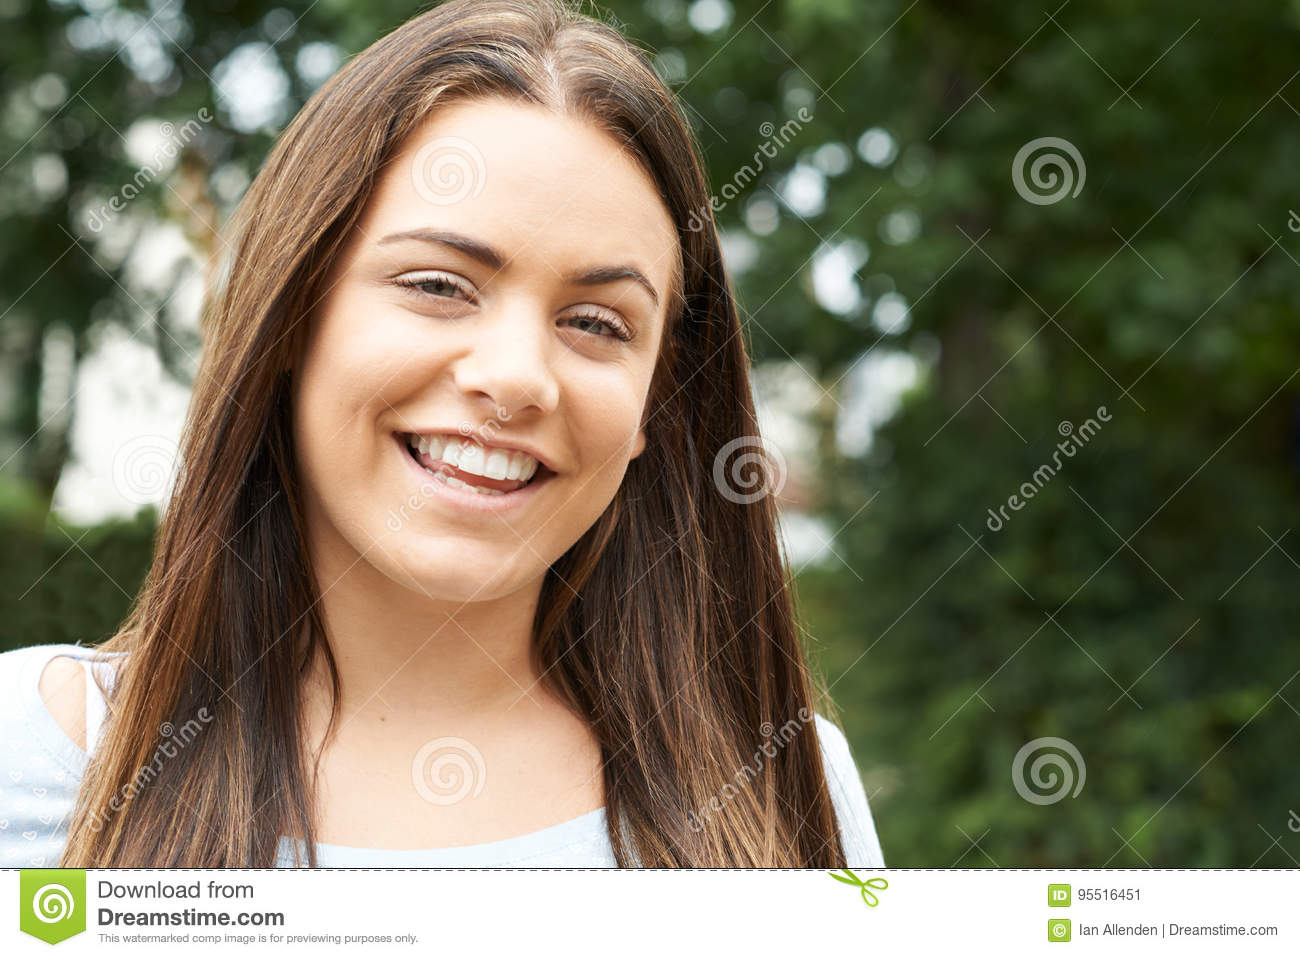 Outdoor Head And Shoulders Portrait Of Smiling Teenage Girl